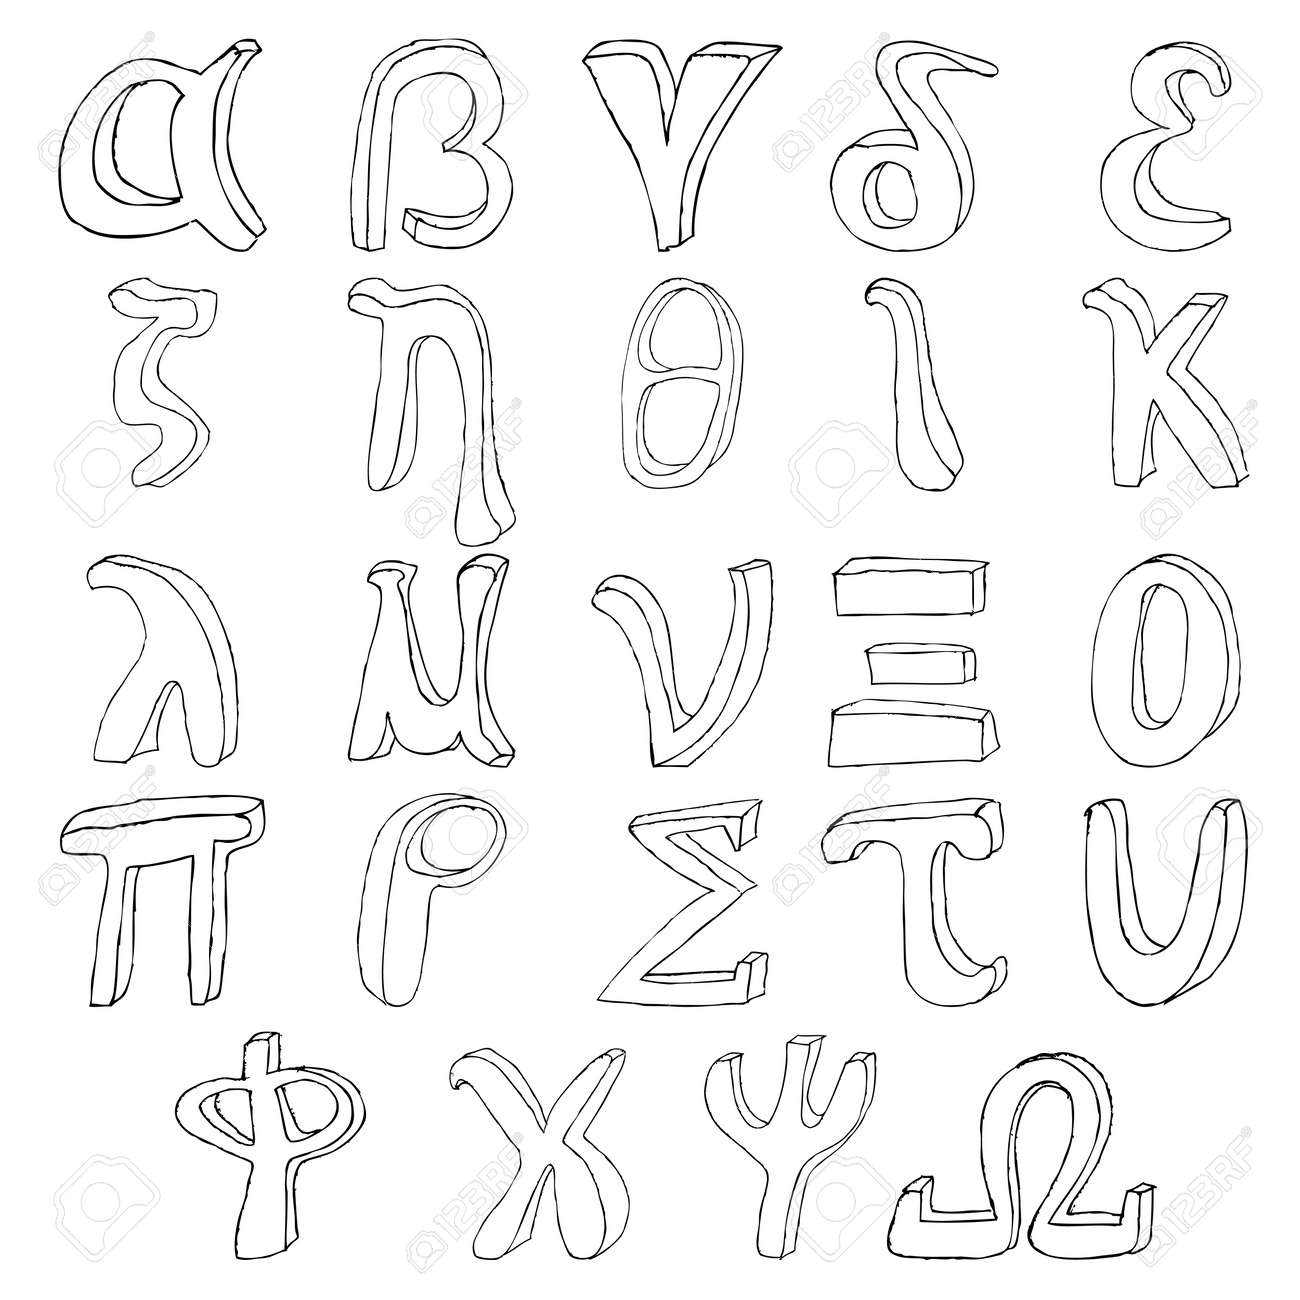 Hand drawing greek alphabet illustration set in black ink